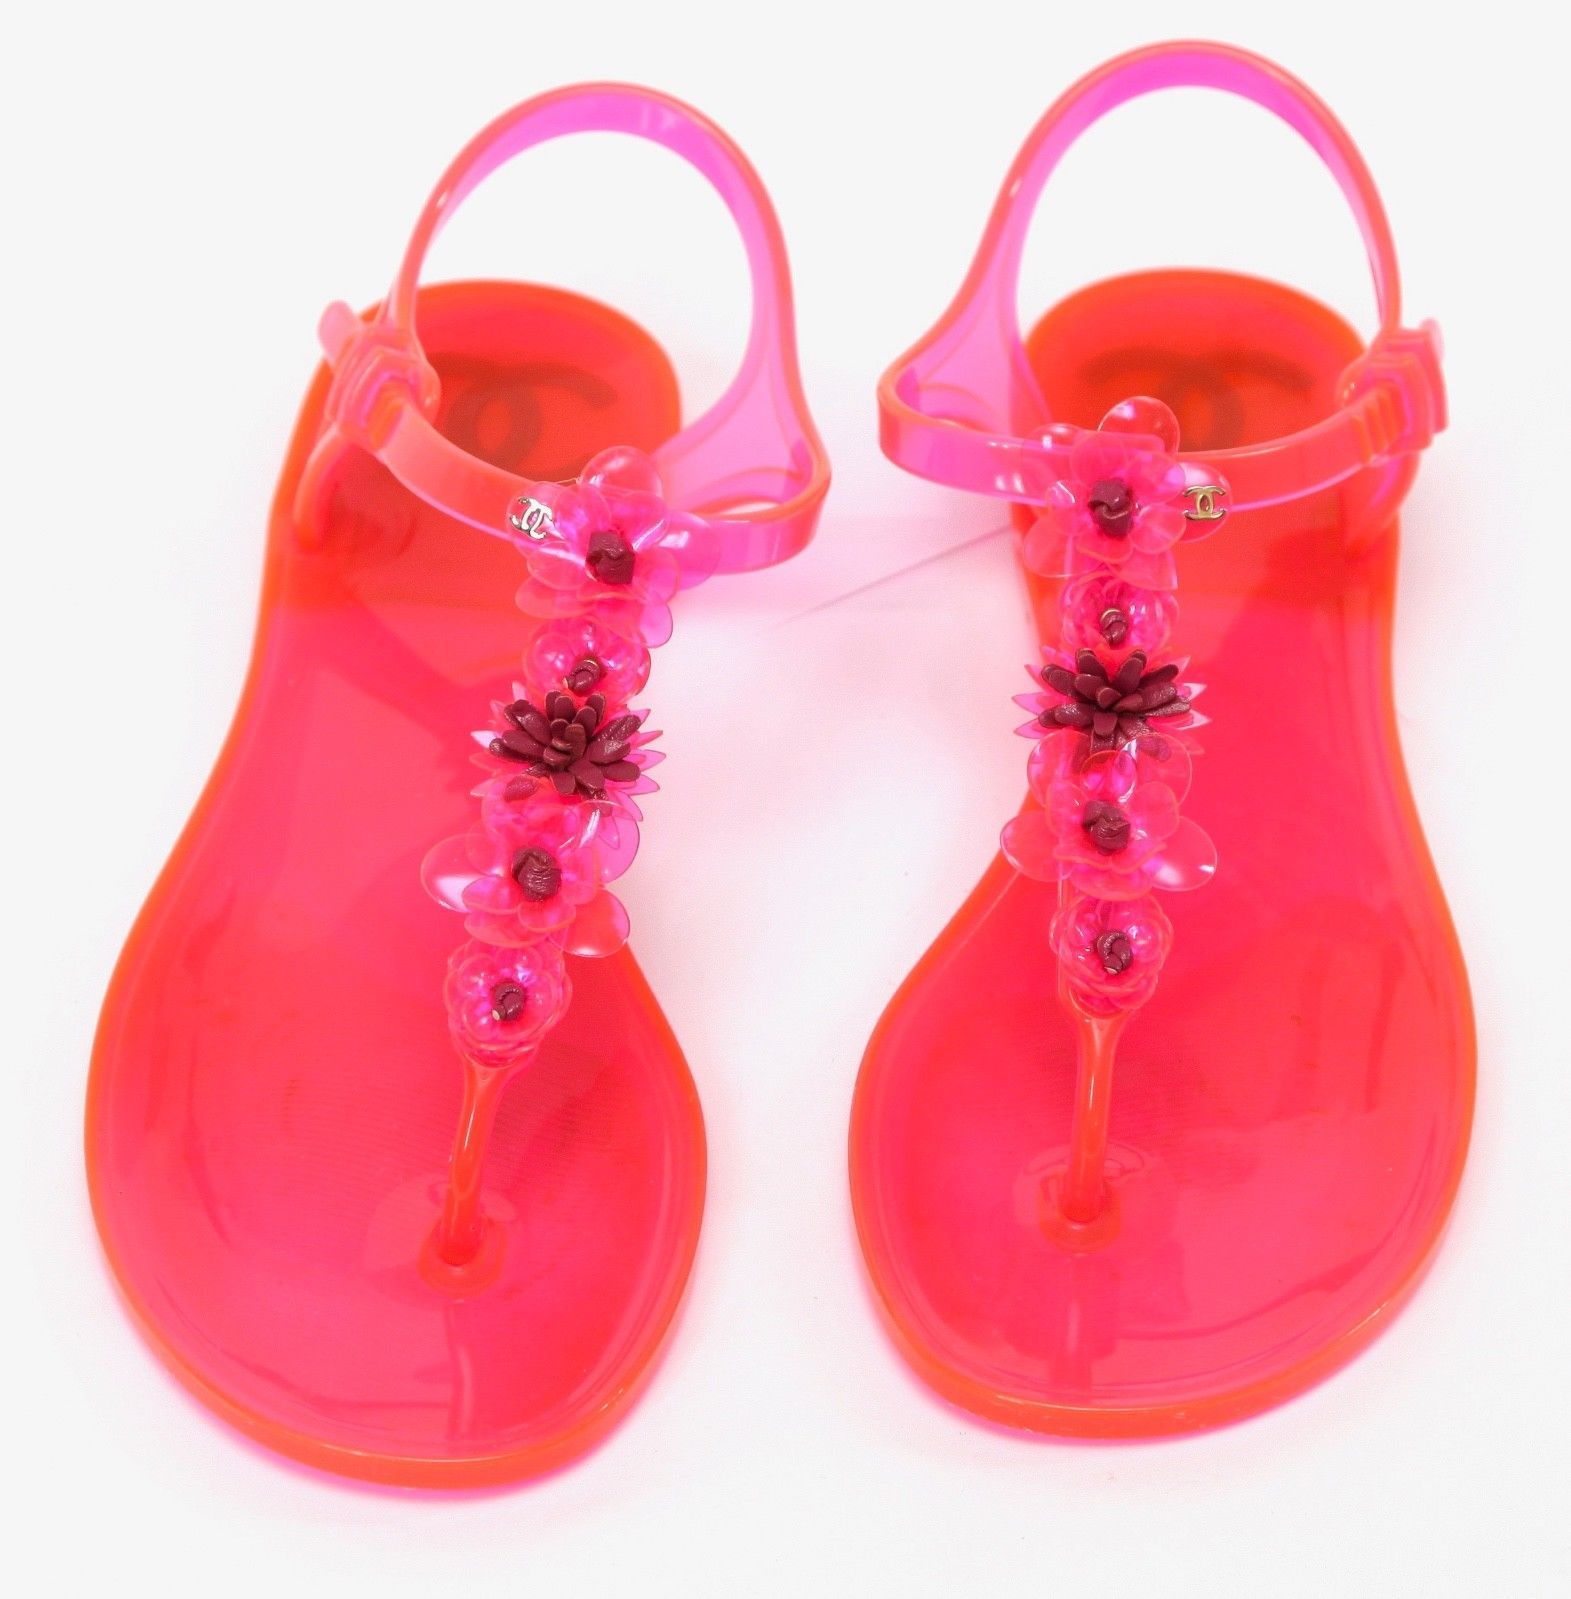 bd1af1bd6 CHANEL Sandal Camellia Jelly Pink Thong Buckle Rubber Leather Gold CC Sz 37  2016